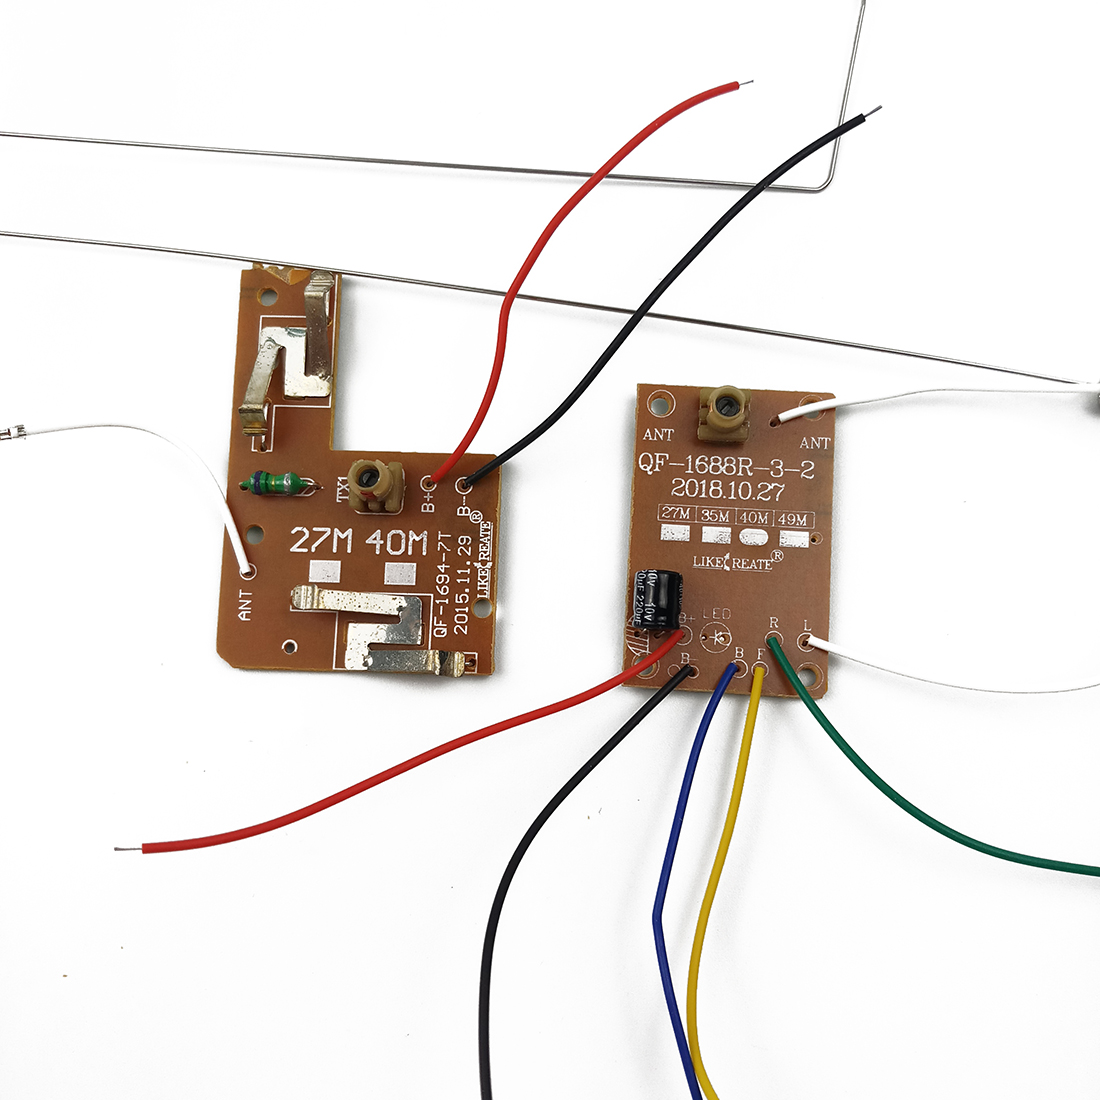 4CH <font><b>40MHZ</b></font> Remote Transmitter & <font><b>Receiver</b></font> Board with Antenna For DIY <font><b>RC</b></font> Car Vehicle Robot Truck Boat Remote Control Toy Accessory image